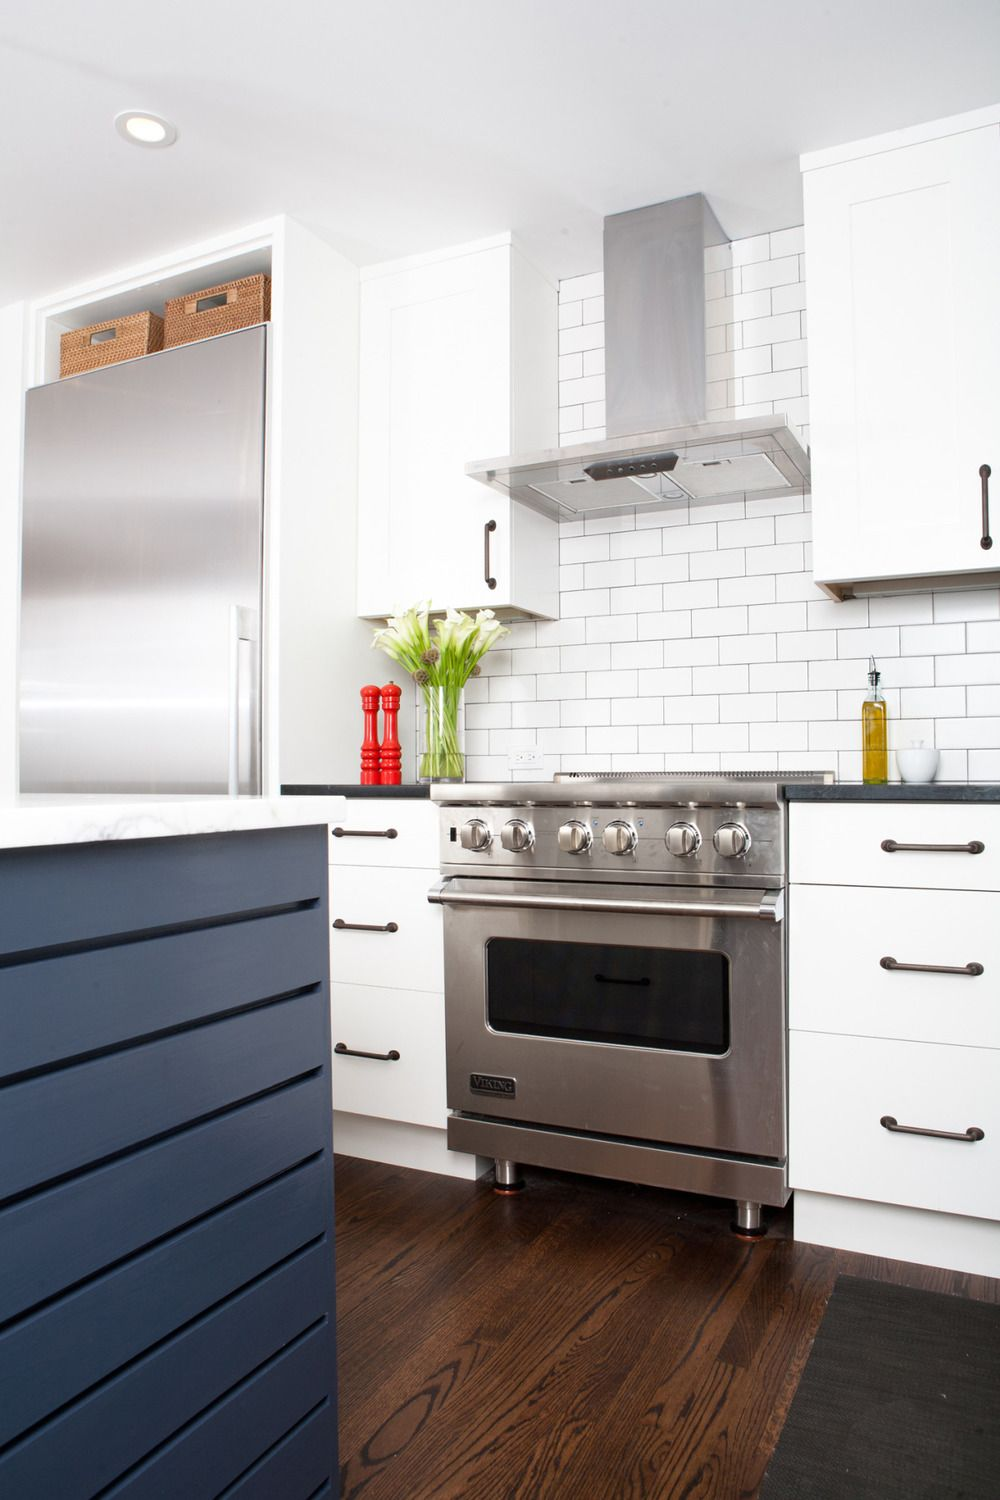 Kitchen Design Company Fair San Francisco Interior Design Company Regan Baker Design  Noe Design Ideas